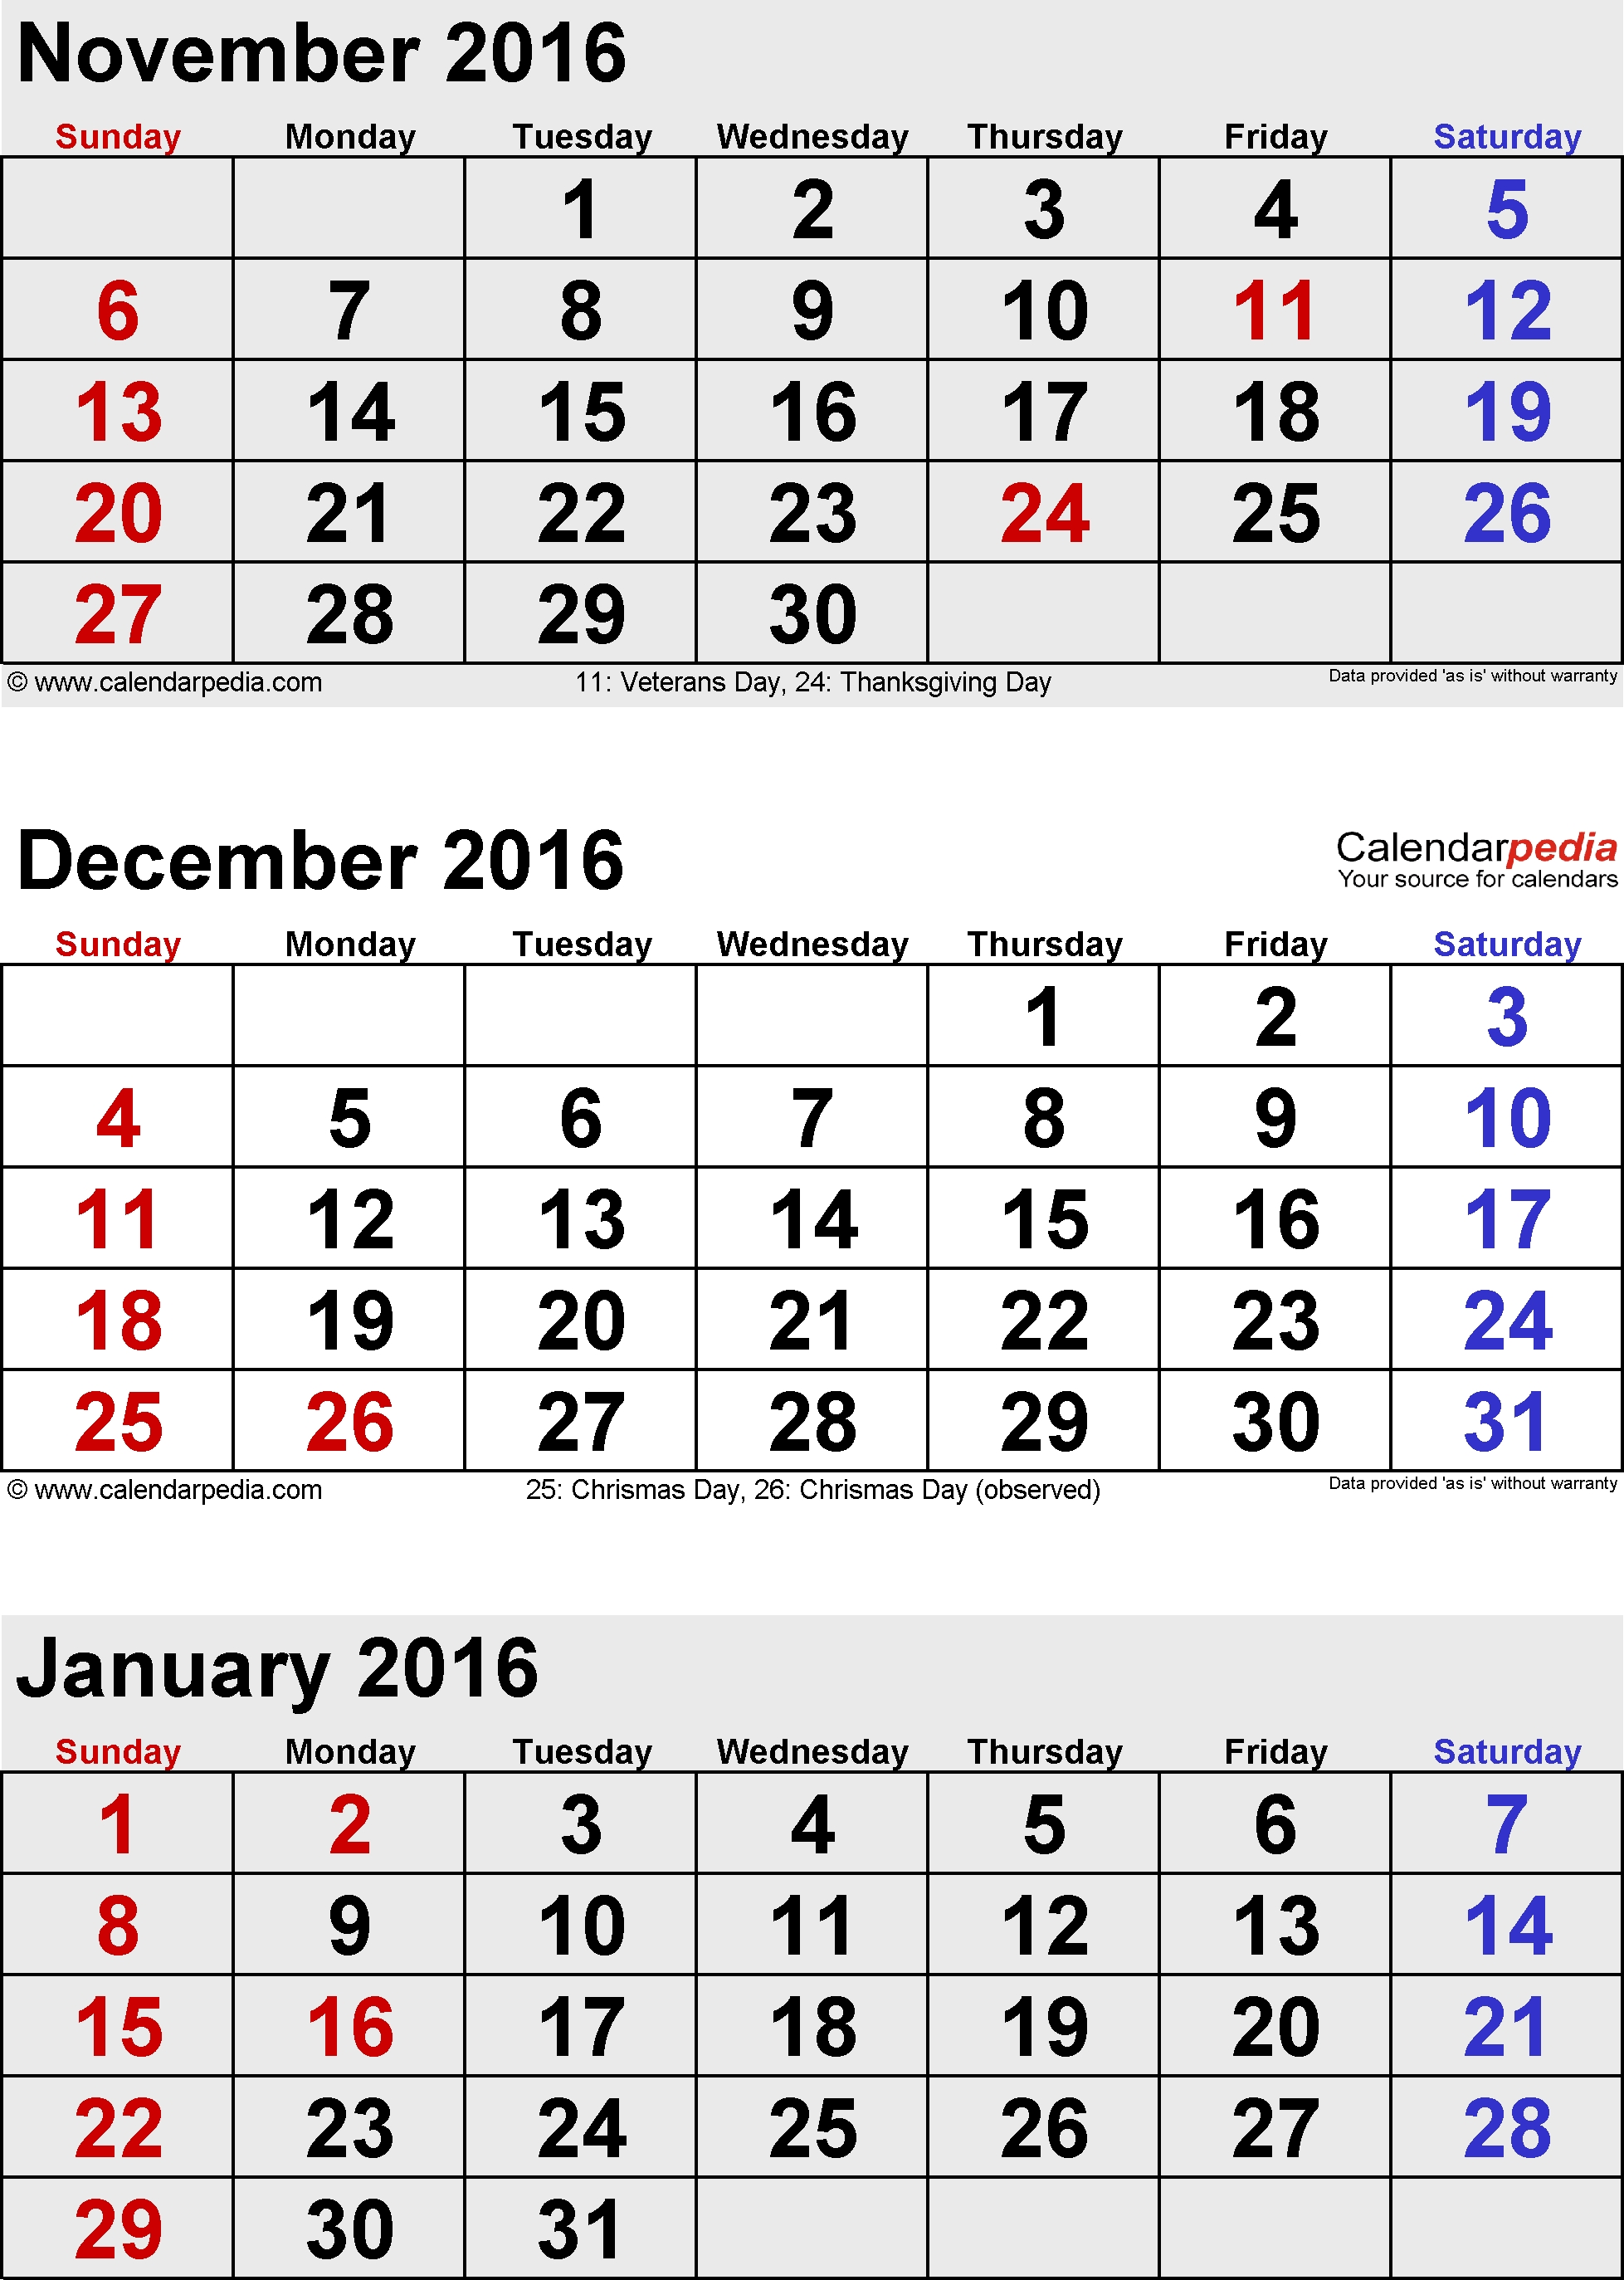 January 2016 Calendars For Word, Excel & Pdf  Calendar Images From Jan To Dec